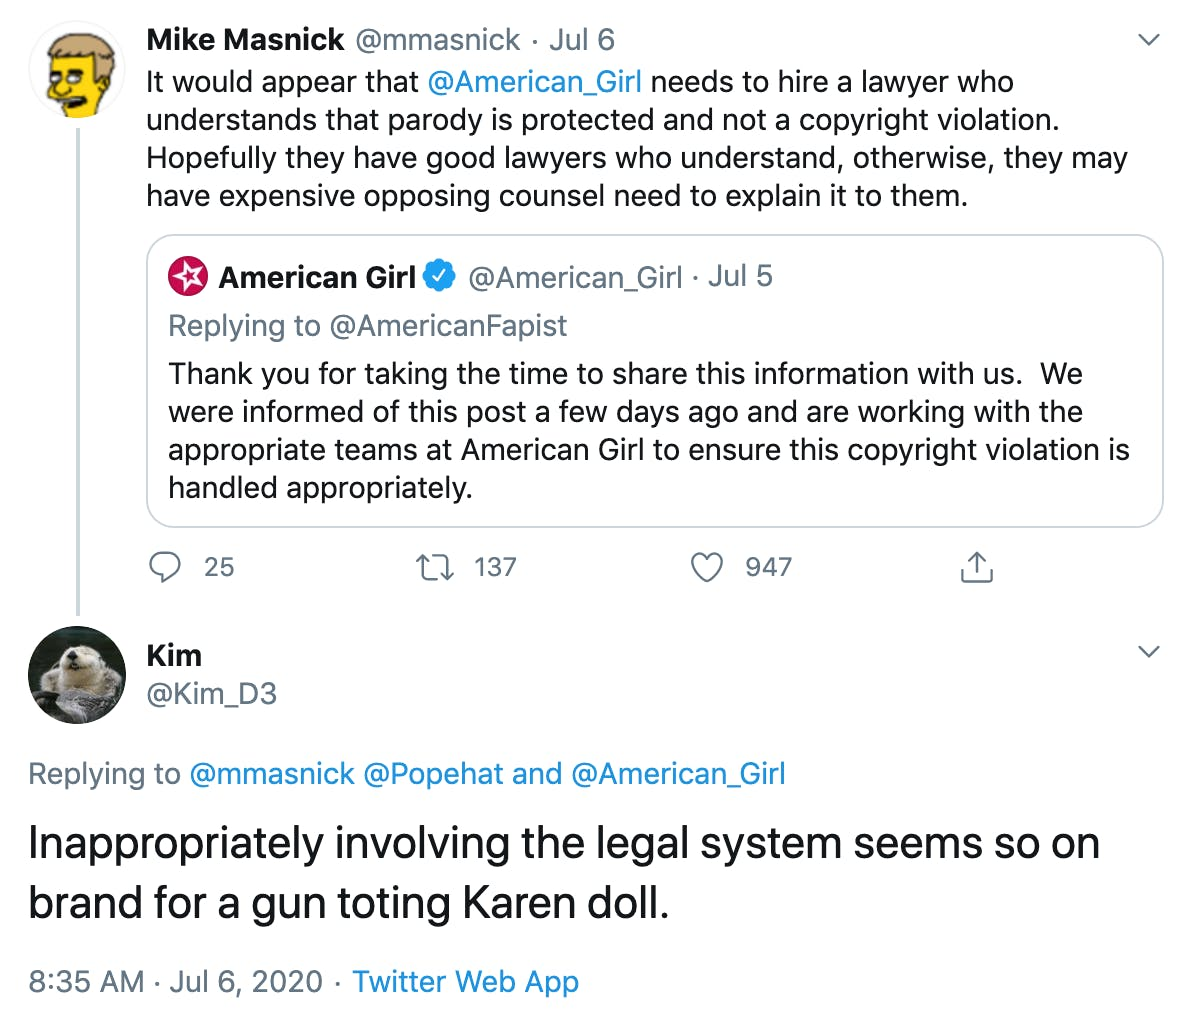 """@mmasnick """"It would appear that  @American_Girl  needs to hire a lawyer who understands that parody is protected and not a copyright violation. Hopefully they have good lawyers who understand, otherwise, they may have expensive opposing counsel need to explain it to them."""" @Kim_D3 """"Inappropriately involving the legal system seems so on brand for a gun toting Karen doll."""""""